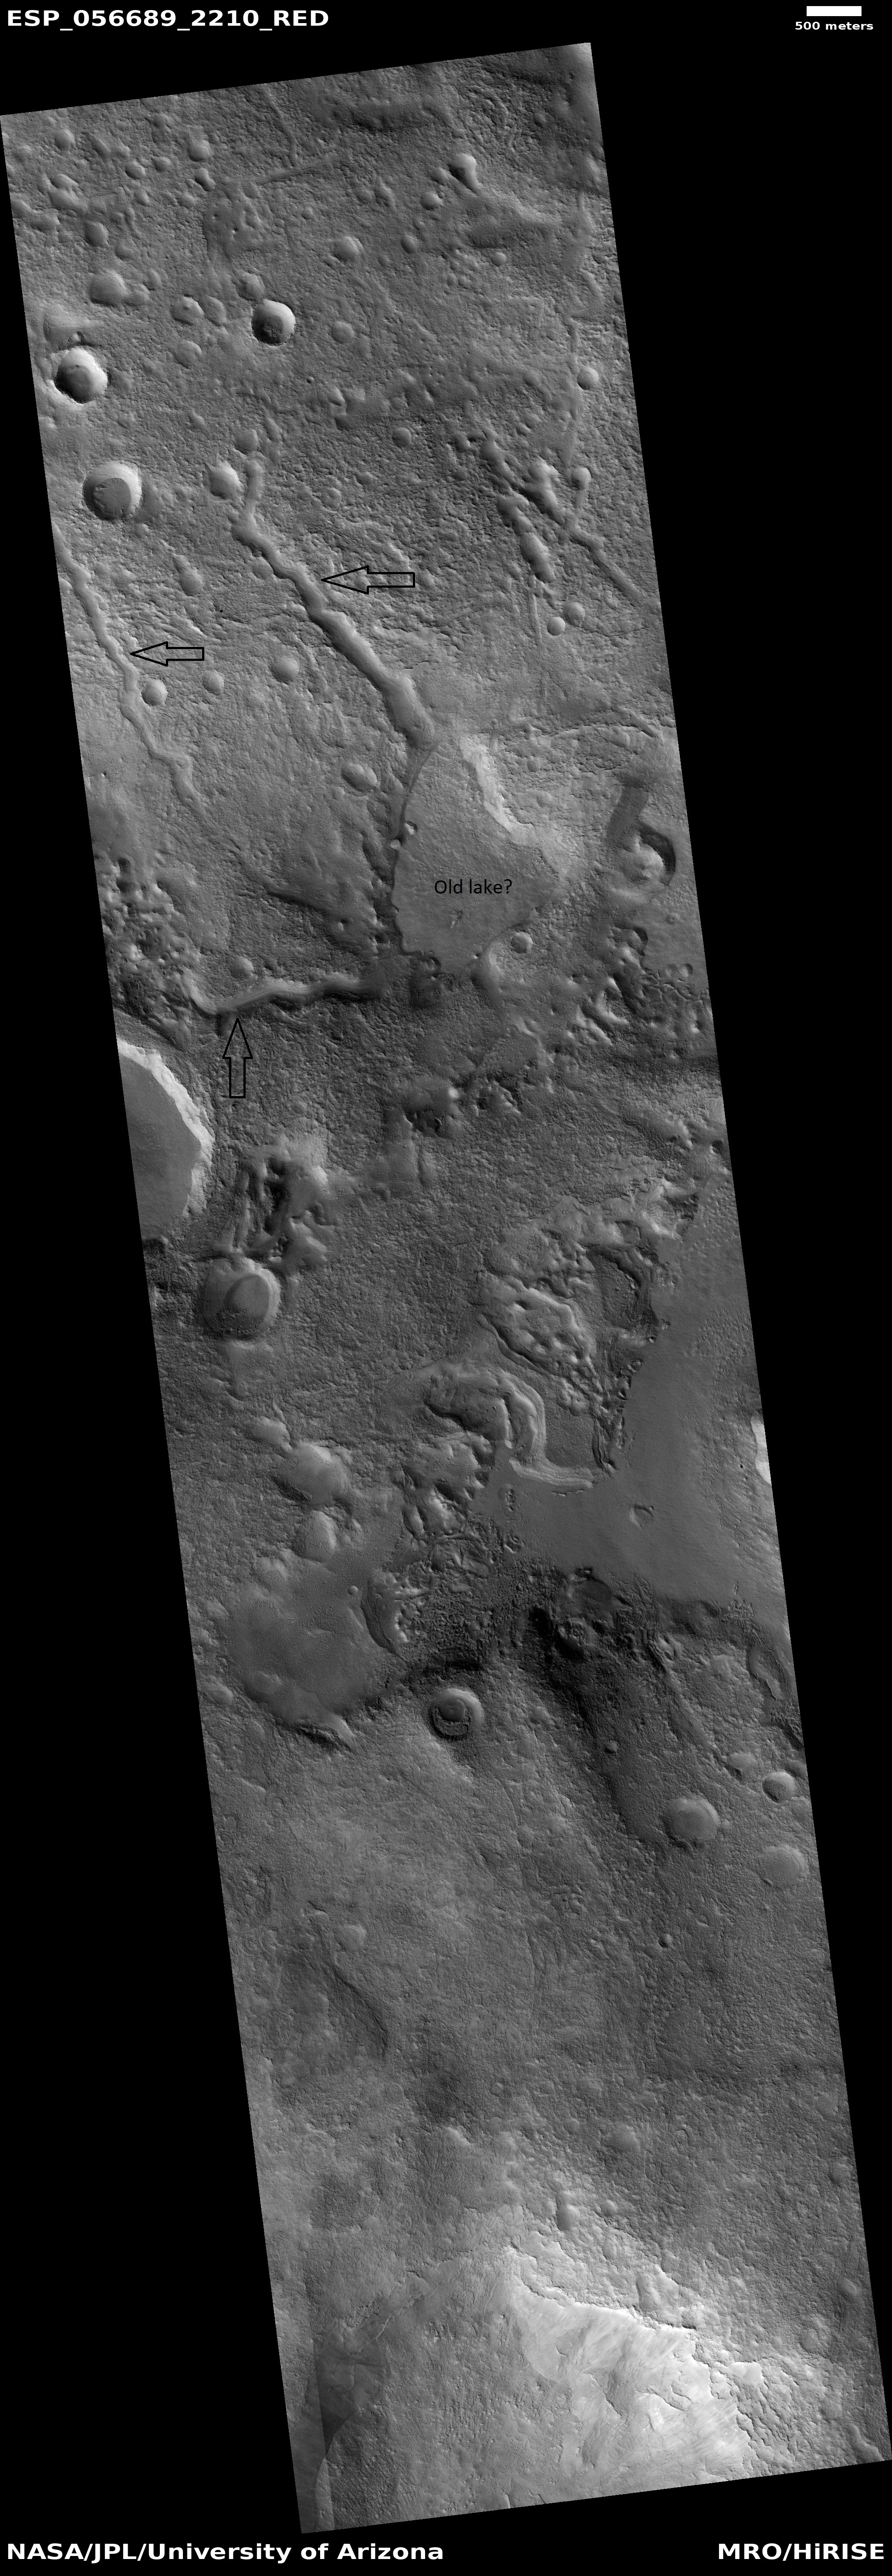 Channels that empty into a low area that could have been a lake, as seen by HiRISE under HiWish program